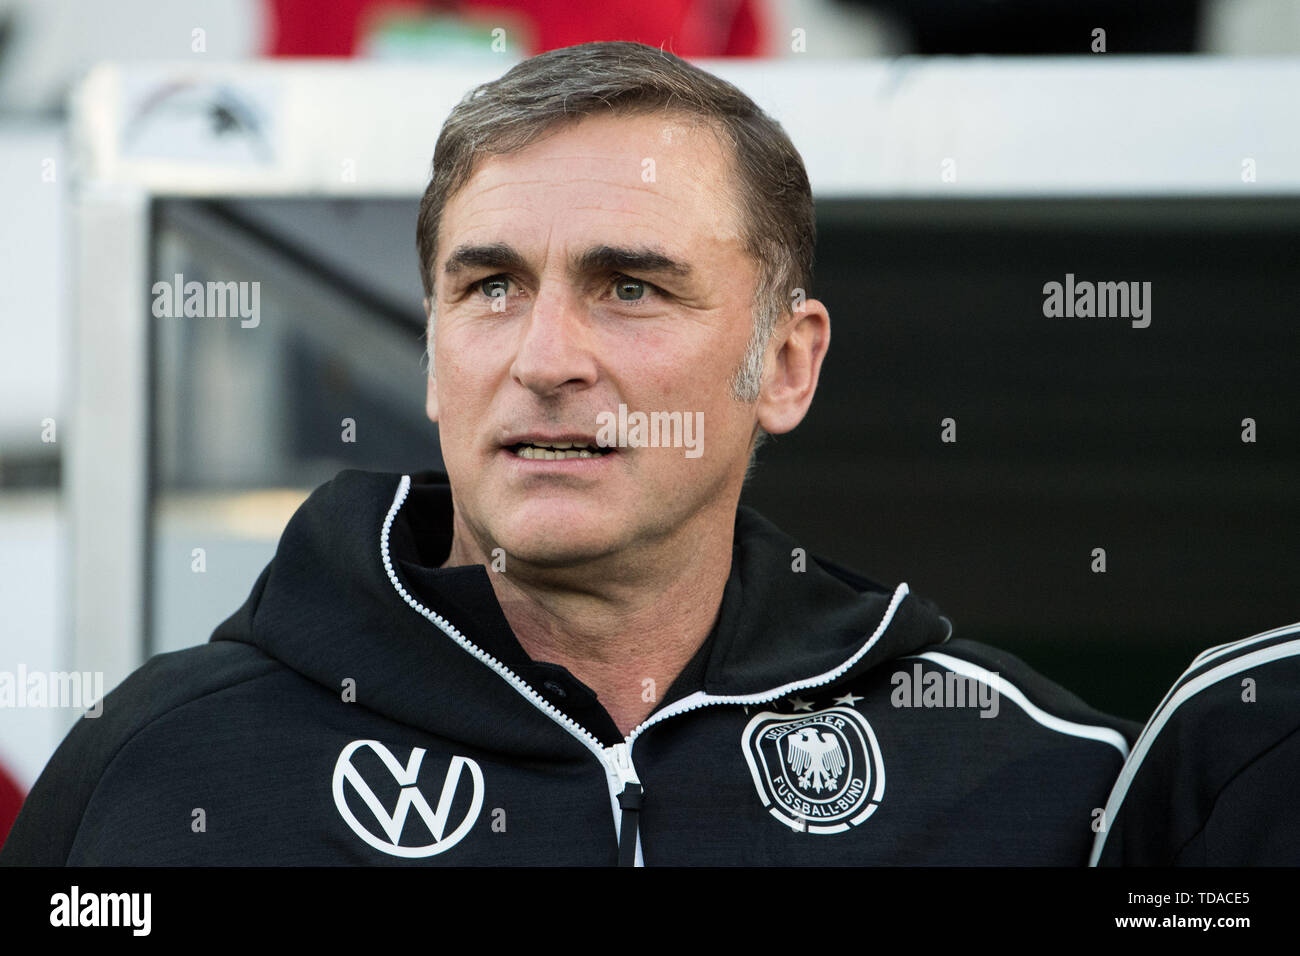 Preview UEFA Under21 European Championship in Italy/SanMarino from 16-30.06 2019. Stock Photo: coach Stefan KUNTZ (GER) sings the national anthem with, singing, half-length, Soccer Laender, U21, Friendly Match, Germany (GER) - France (FRA) 2: 2, on 21.03.2019 in Essen/Germany. å | usage worldwide - Stock Image